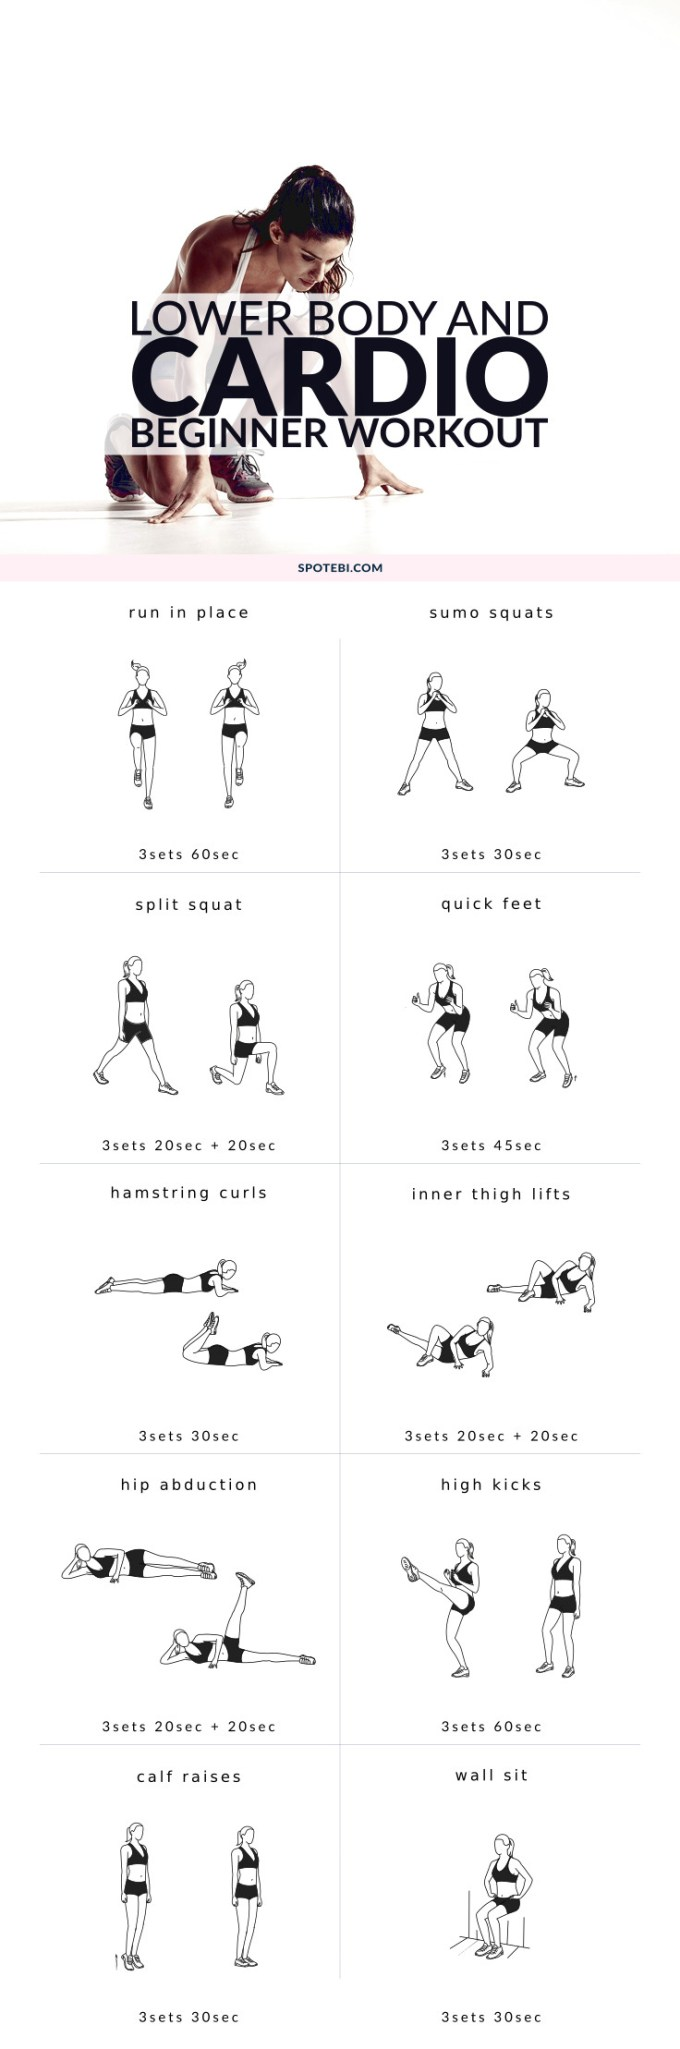 Lower Body Cardio Beginner Workout Routine